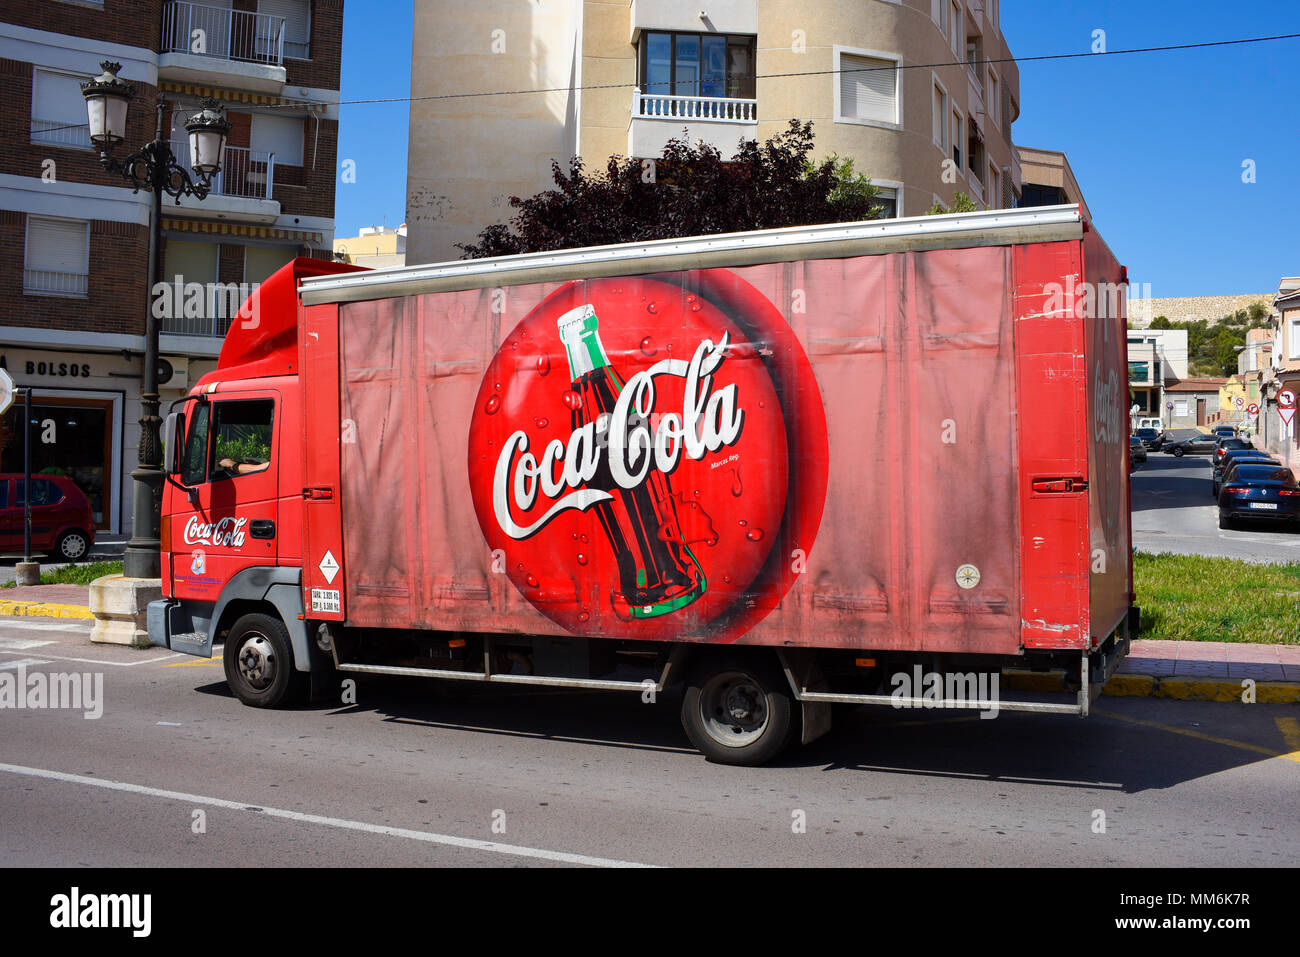 coca cola delivery truck in stockfotos coca cola delivery truck in bilder alamy. Black Bedroom Furniture Sets. Home Design Ideas